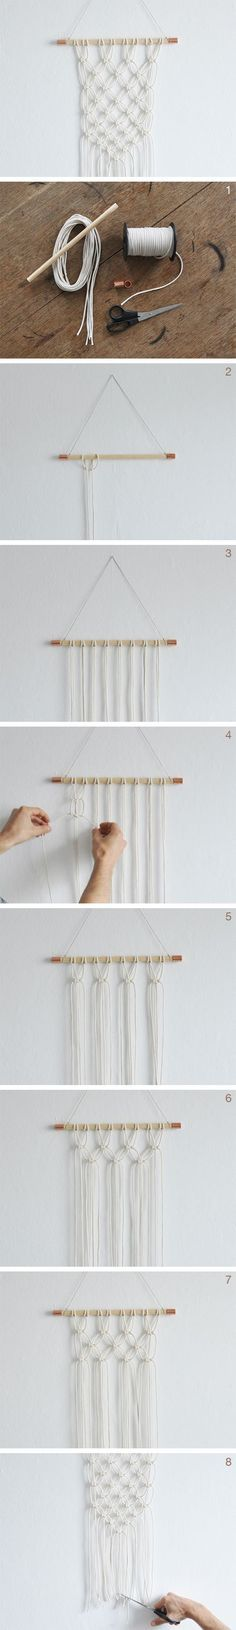 DIY Anleitung: DIY: Makramee Wandteppich knüpfen // free DIY tutorial: how to make a macrame wall hanging via Macrame Projects, Craft Projects, Ideias Diy, Macrame Knots, Diy Macrame, Diy Décoration, Diy Wall, Wall Decor, Wall Art